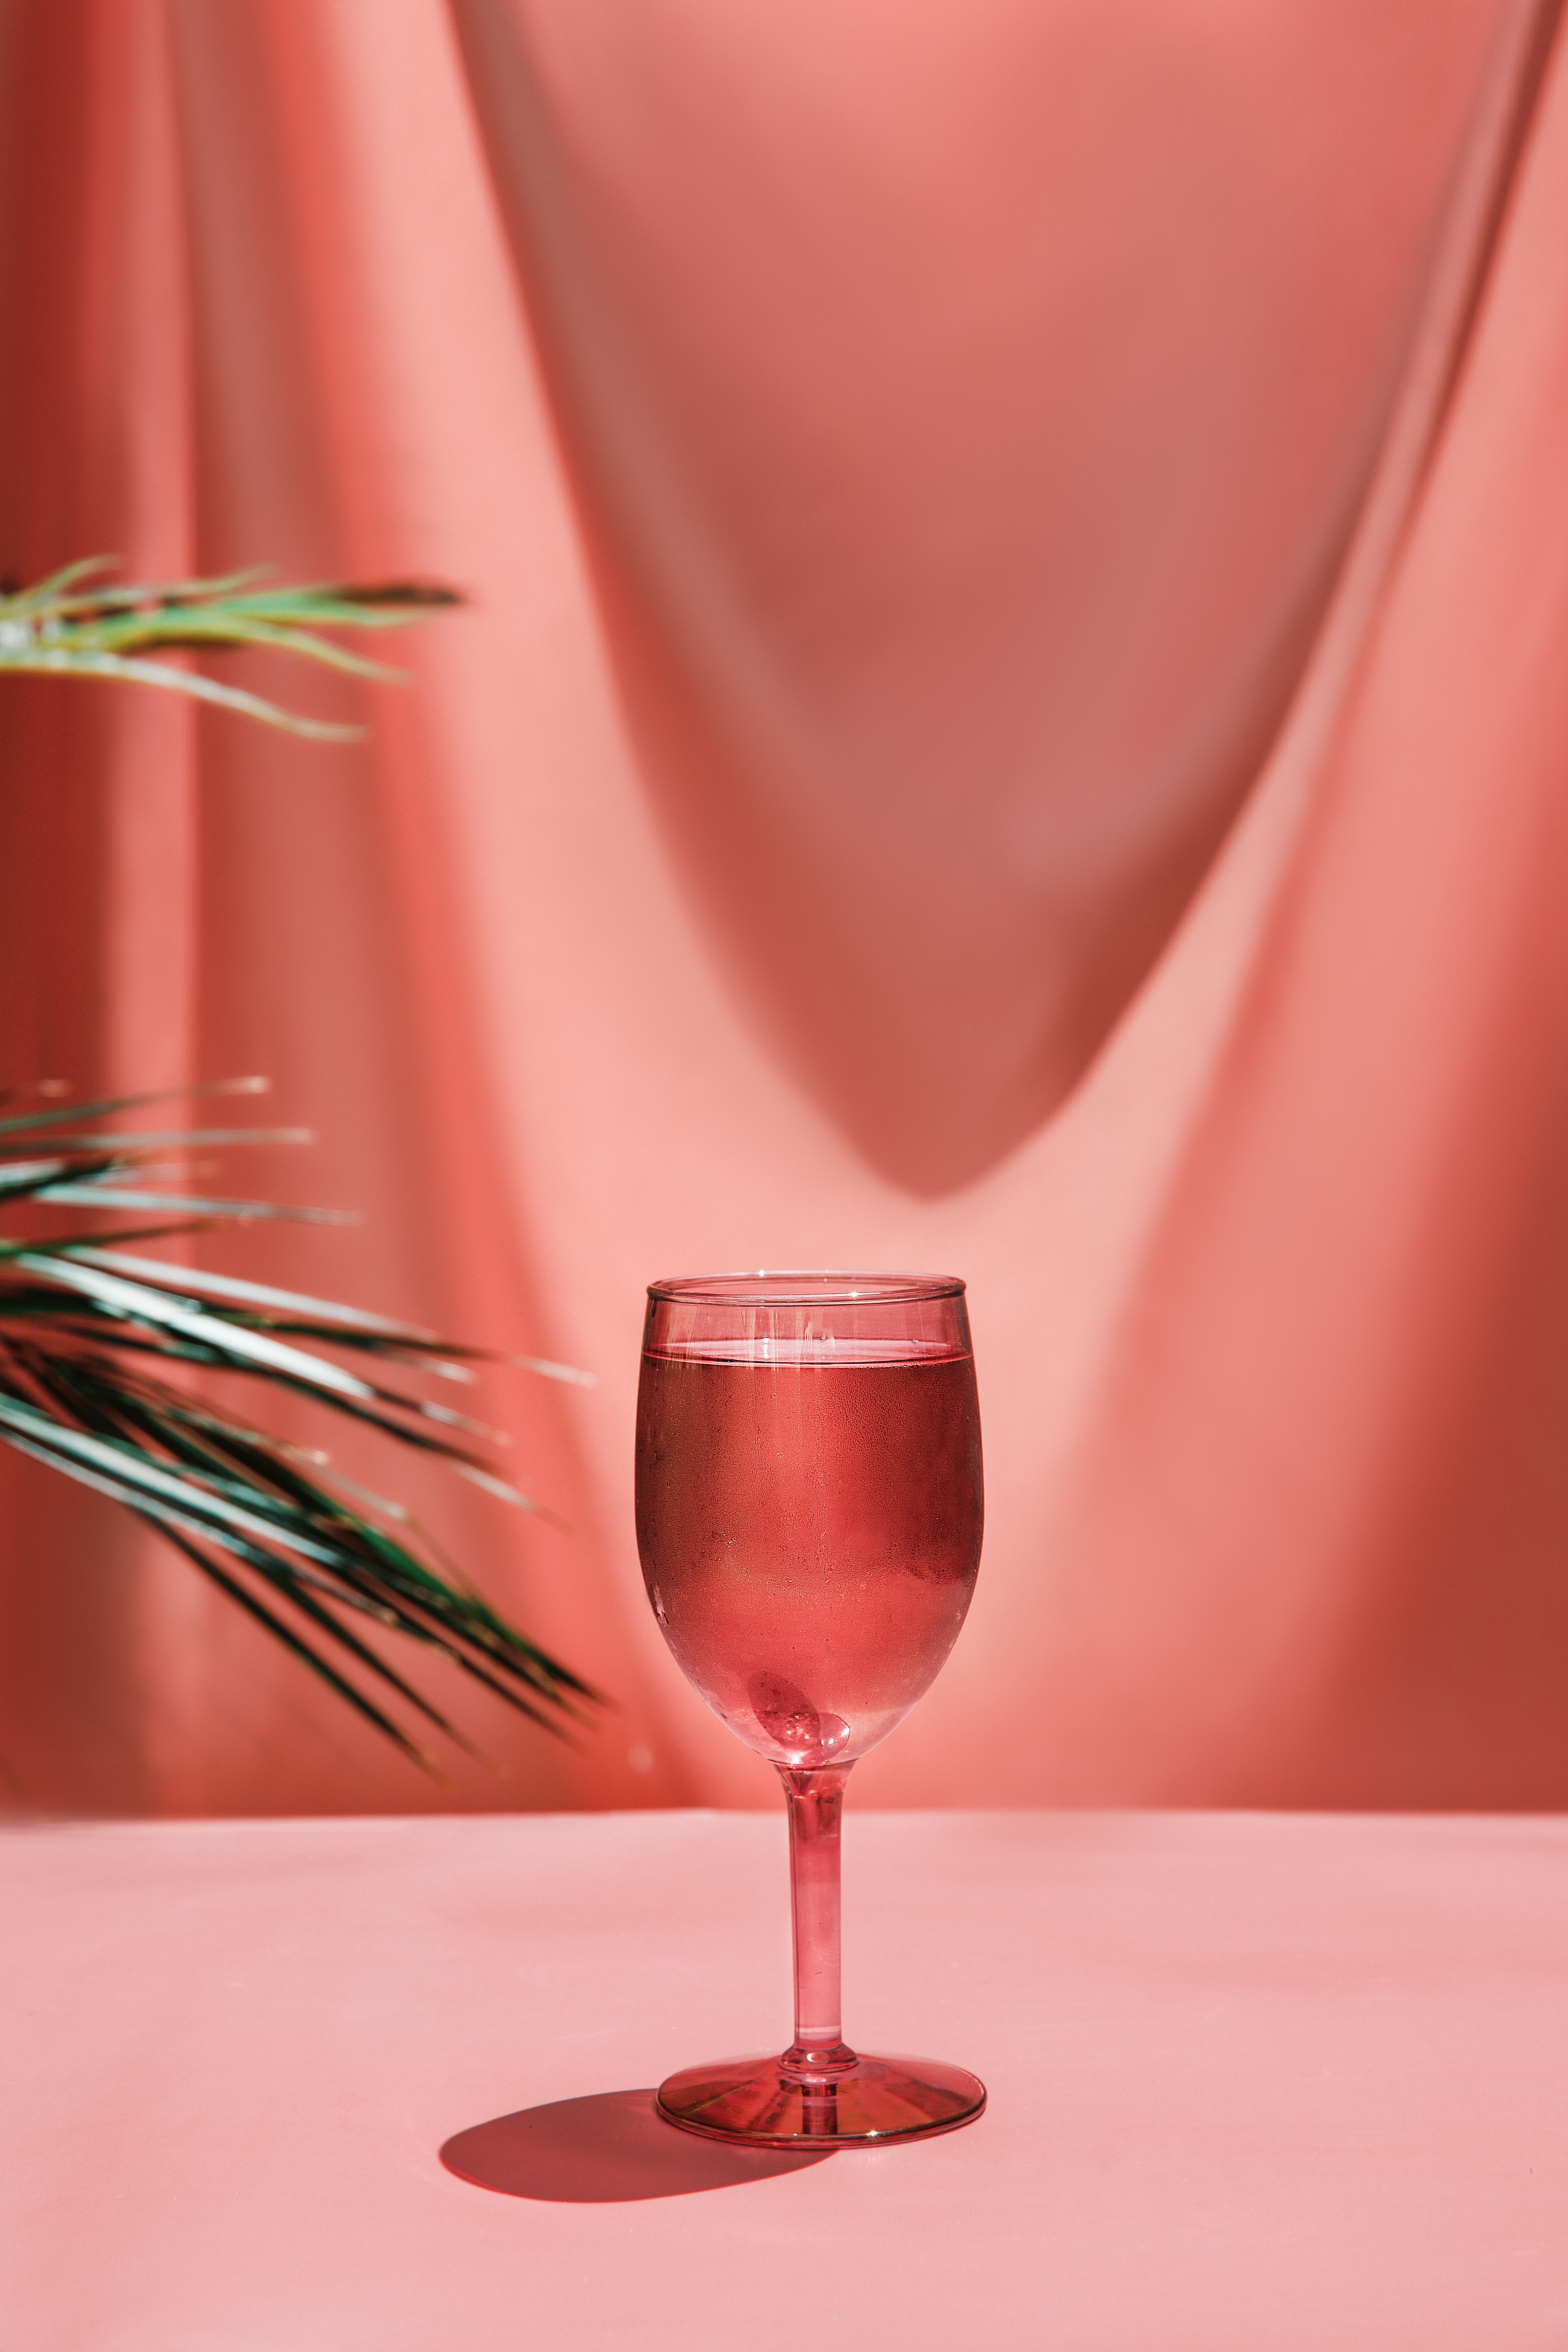 Rose Pink Summer Wine Glass Aesthetic In 2020 Summer Wines Glass Photography